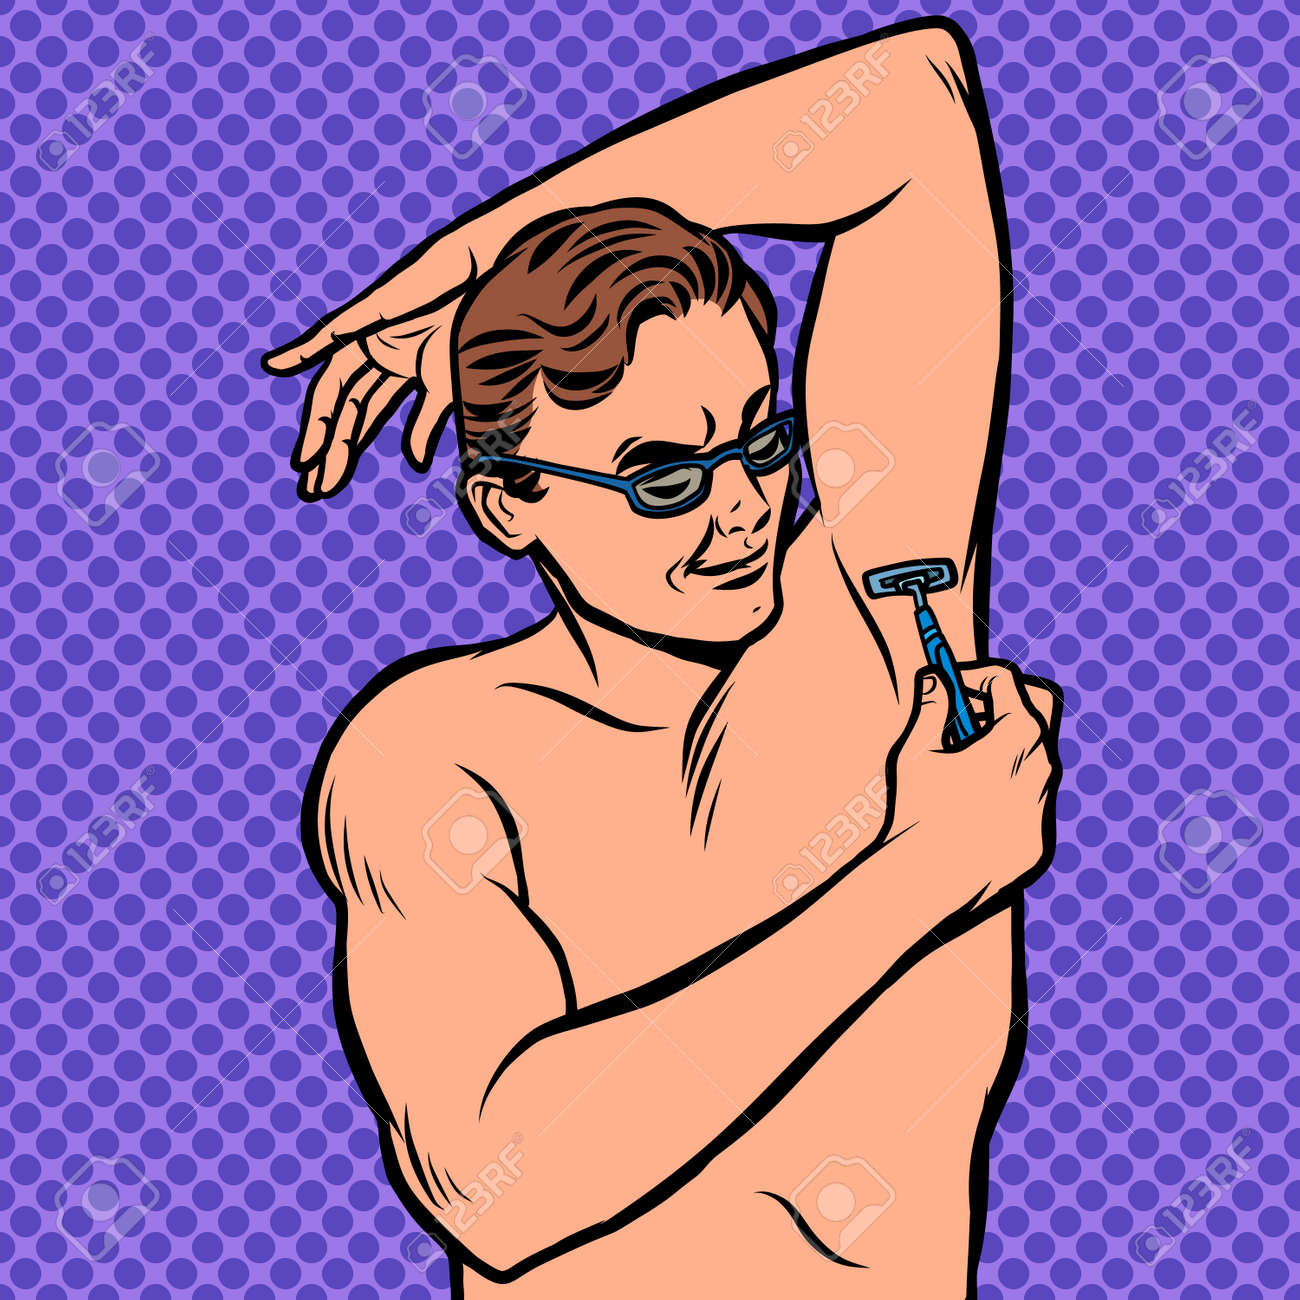 a man shaves his armpit with a razor - 130416653